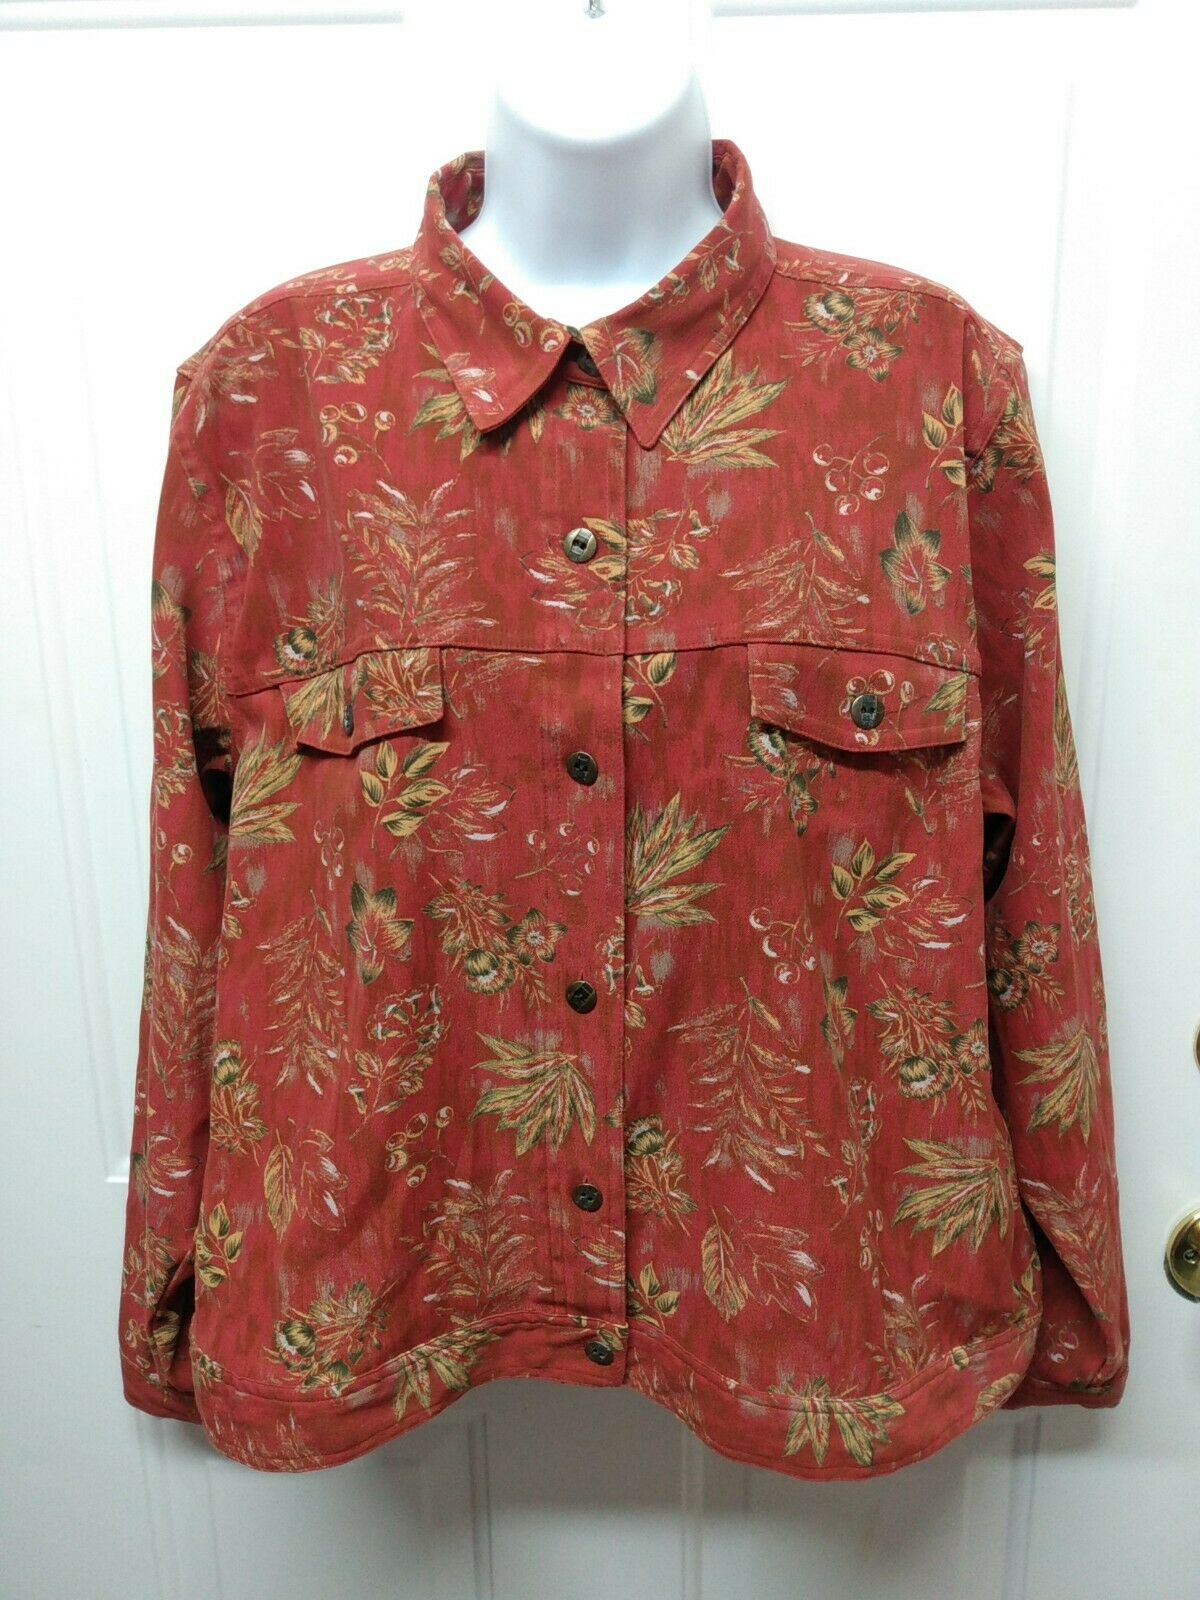 Christopher Banks size large jacket Ladies stretch red button down